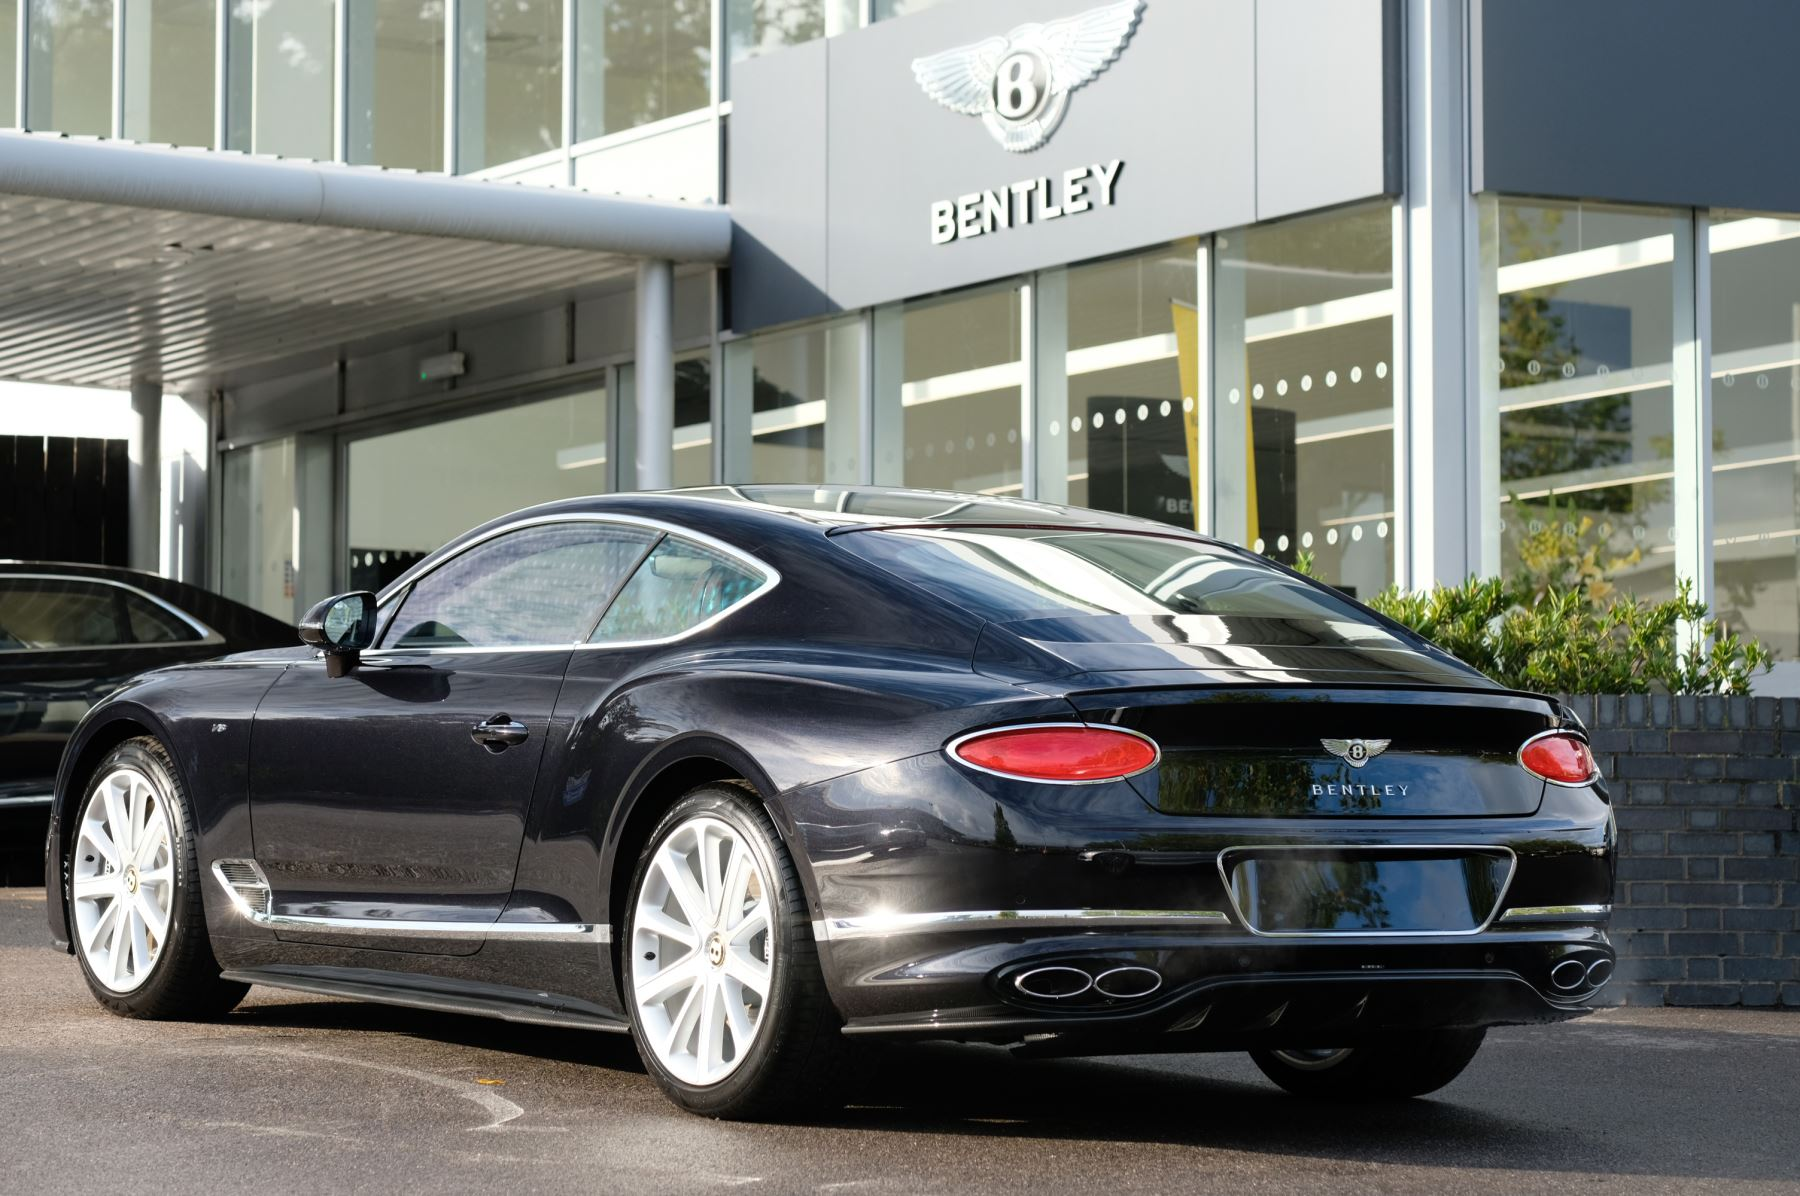 Bentley Continental GT 4.0 V8 2dr Auto [City+Touring Spec] image 5